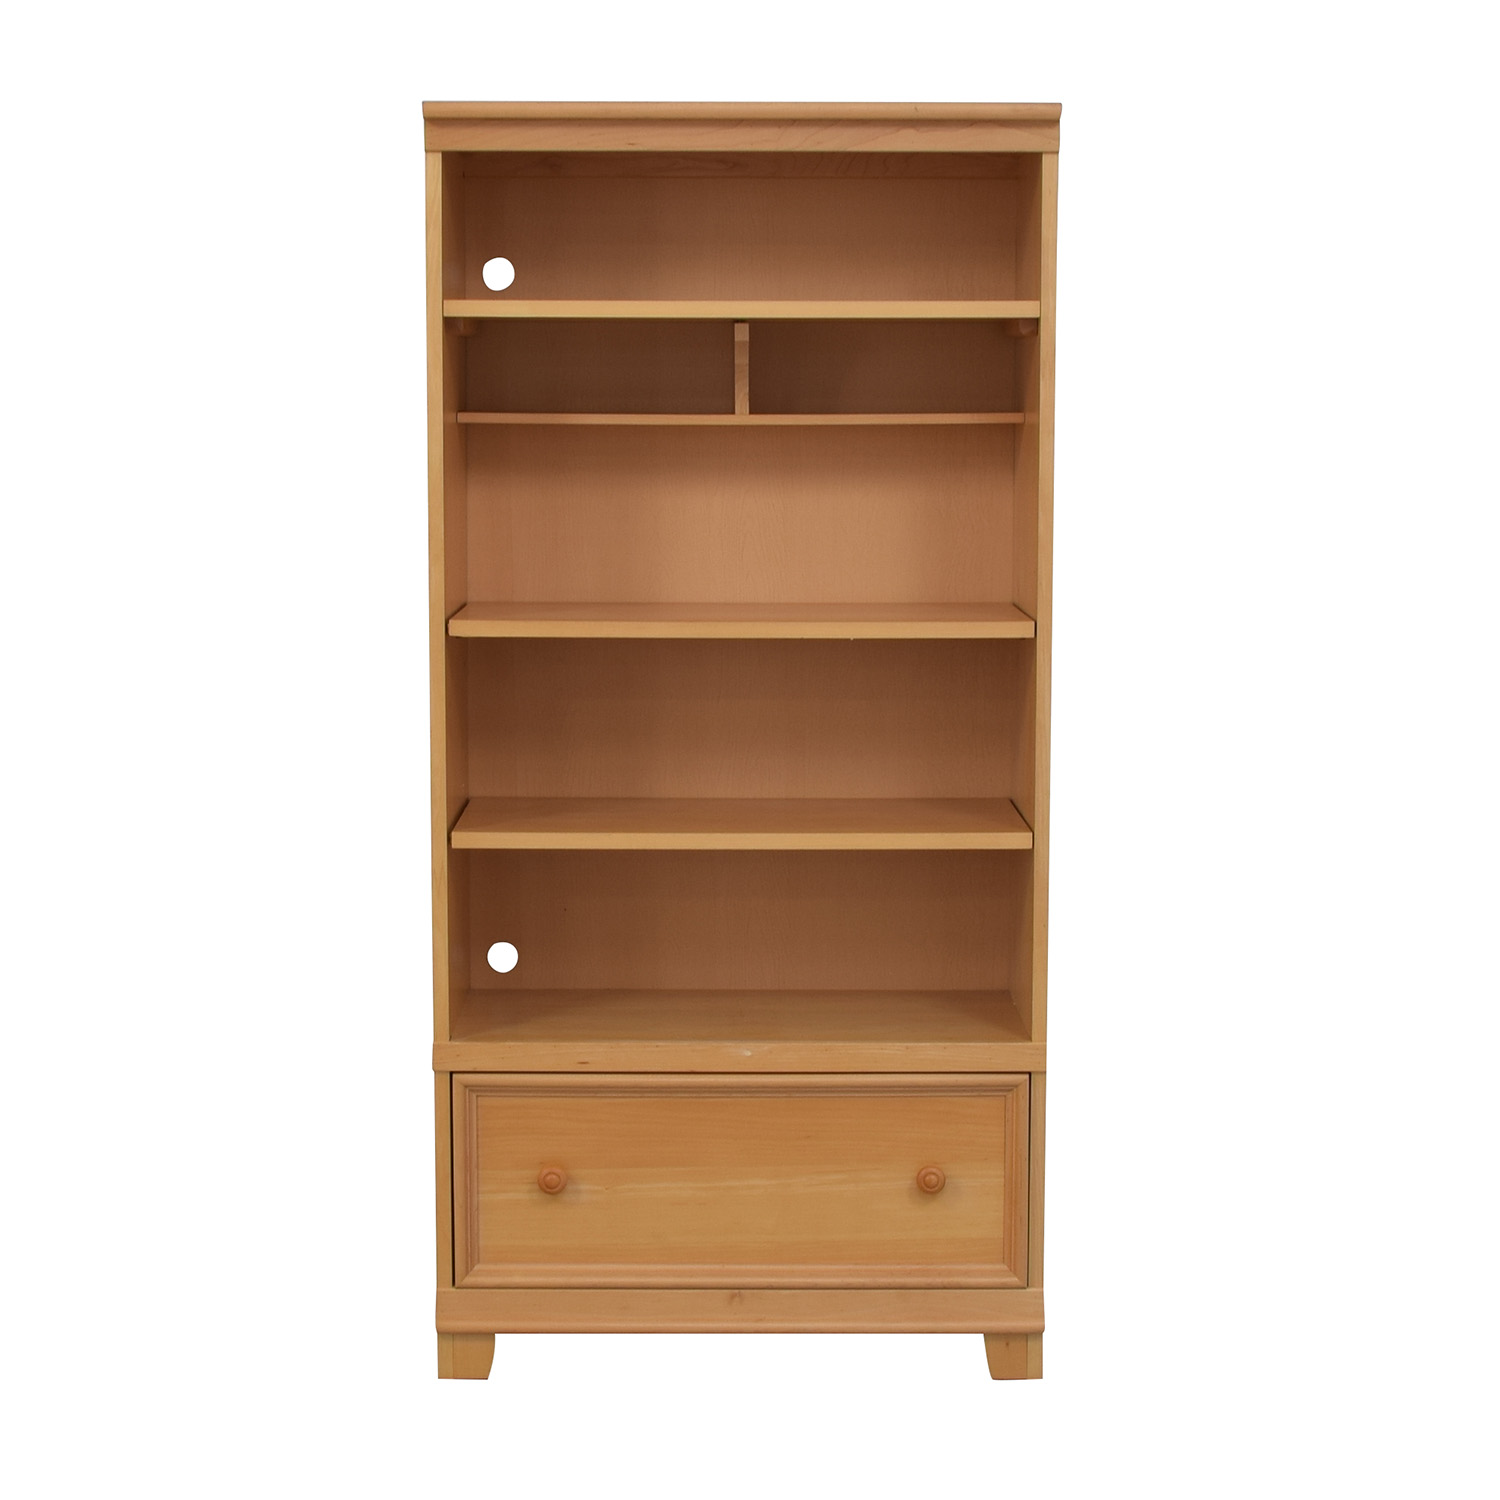 Stanley Furniture Stanley Furniture Young America Bookcase coupon